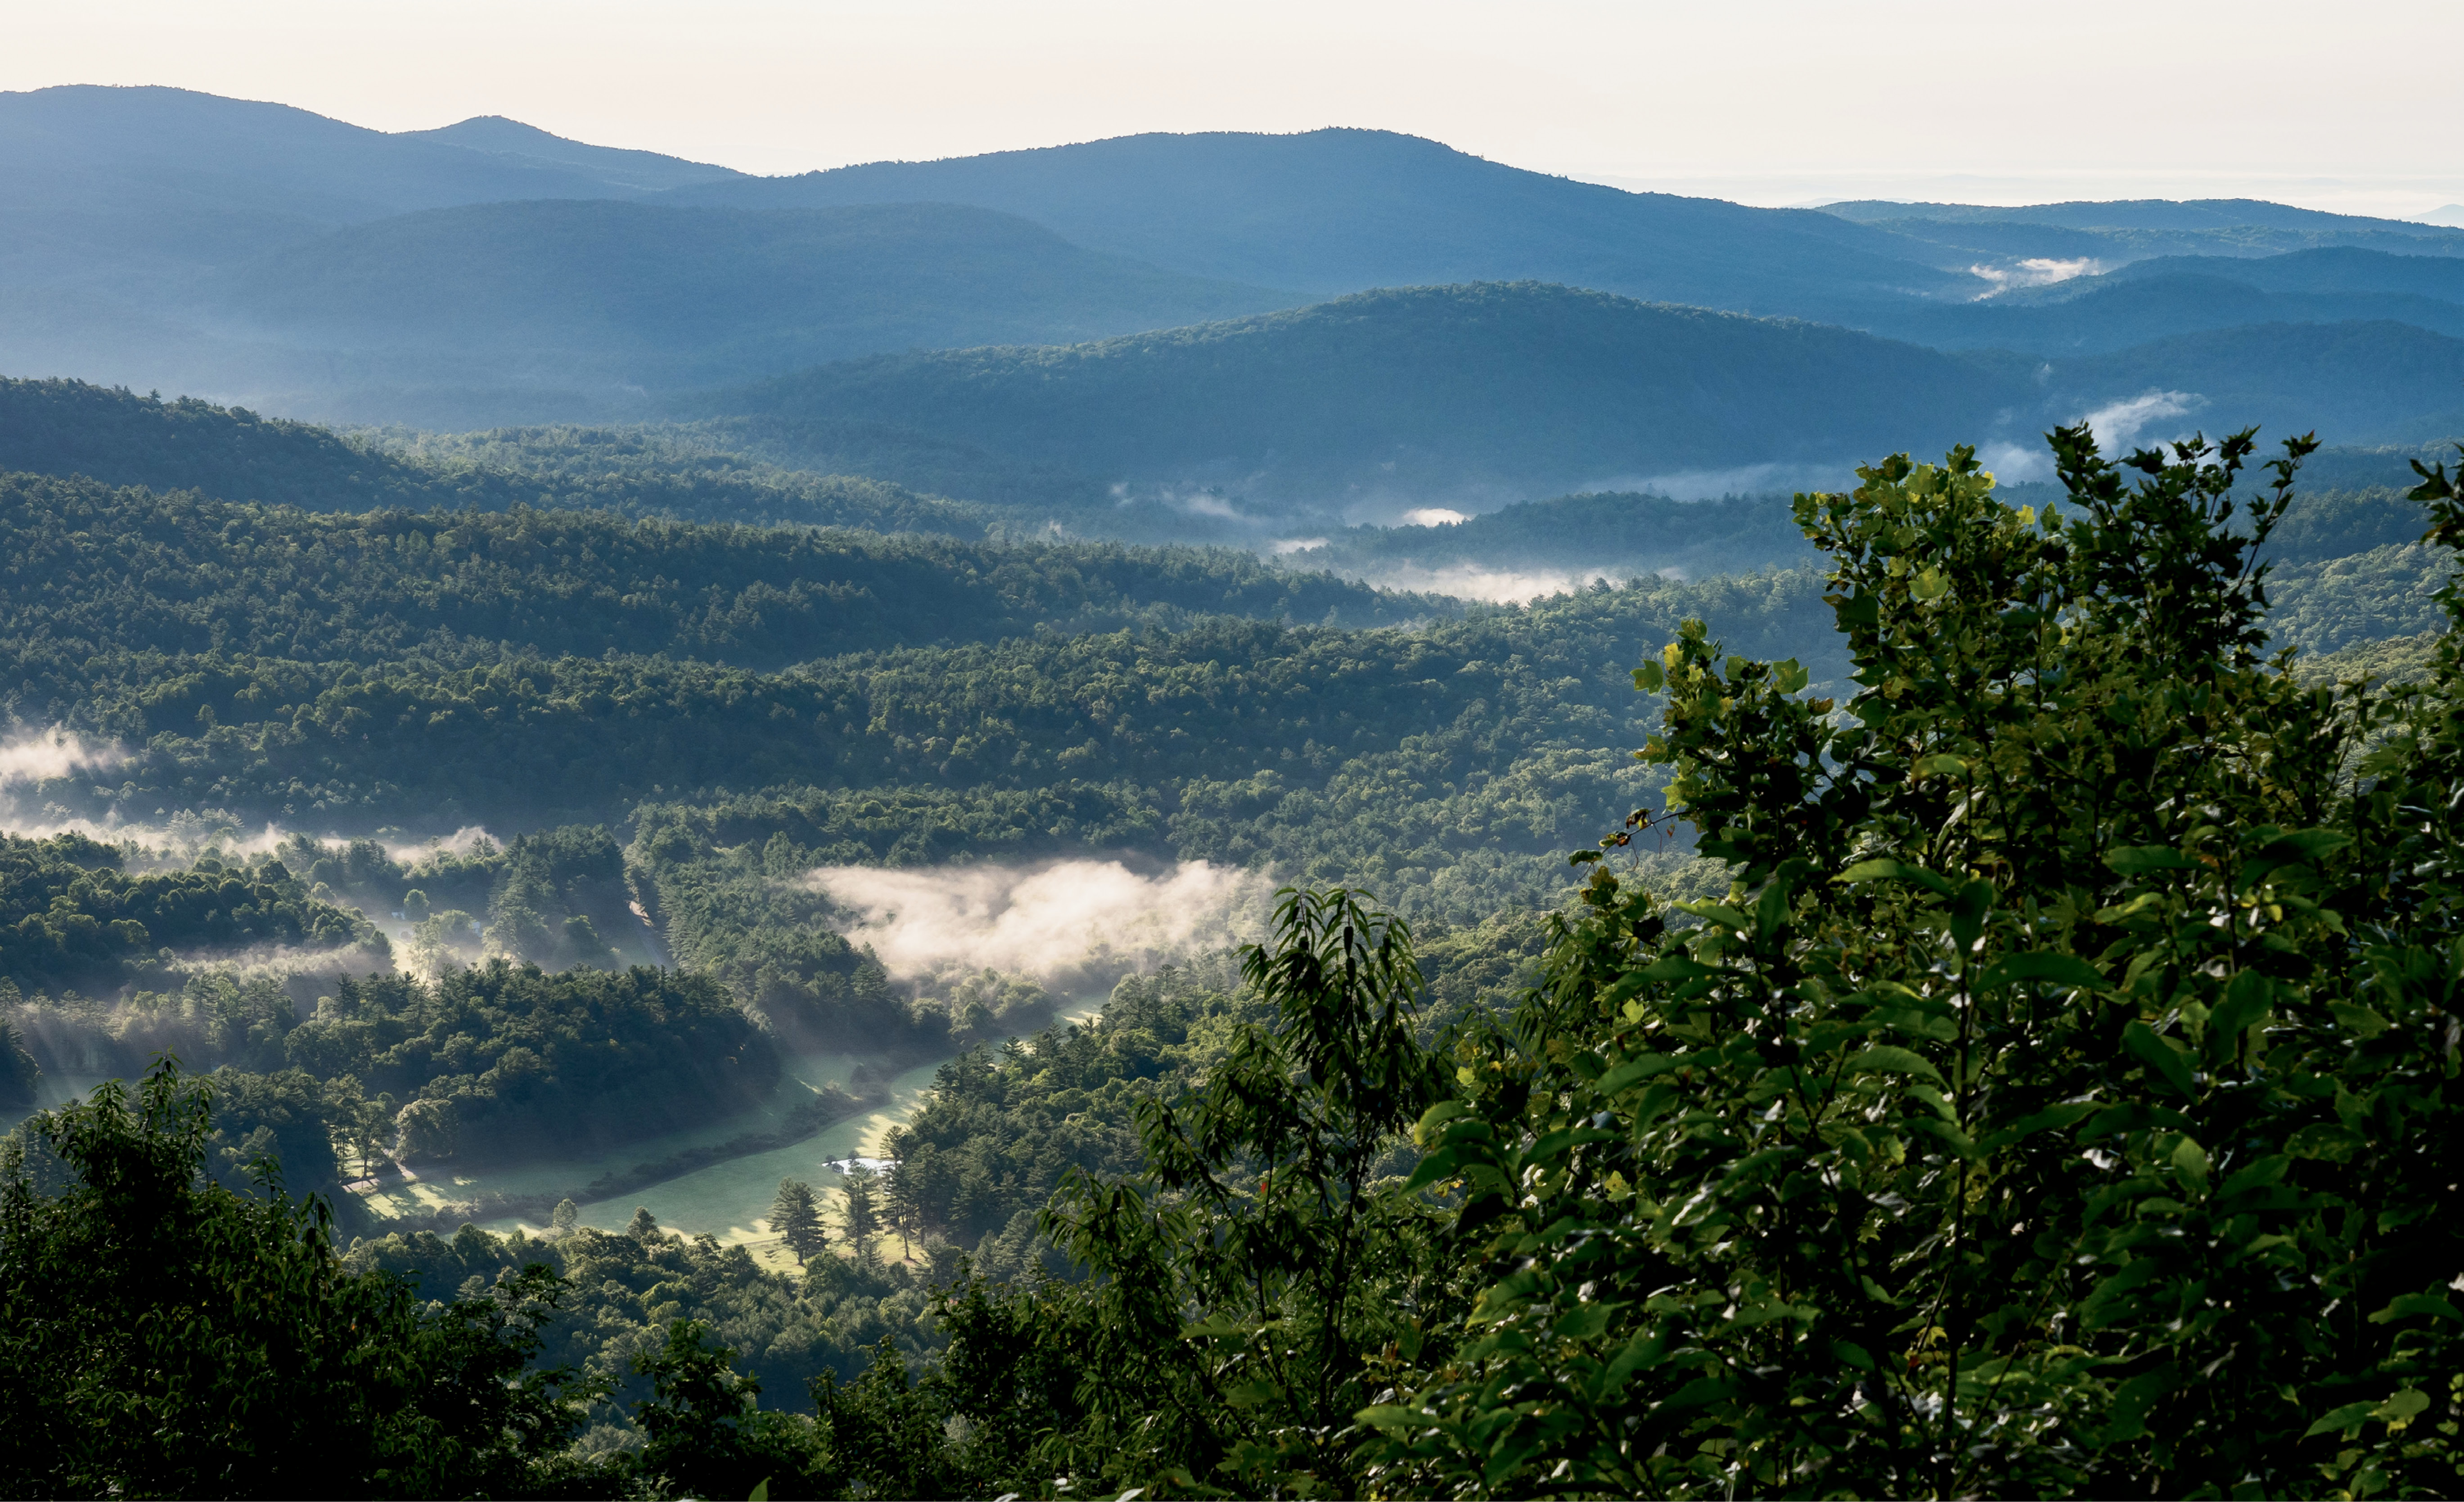 Another elevated summer day in Highlands, perched more than 4,100 feet up in the Nantahala National Forest